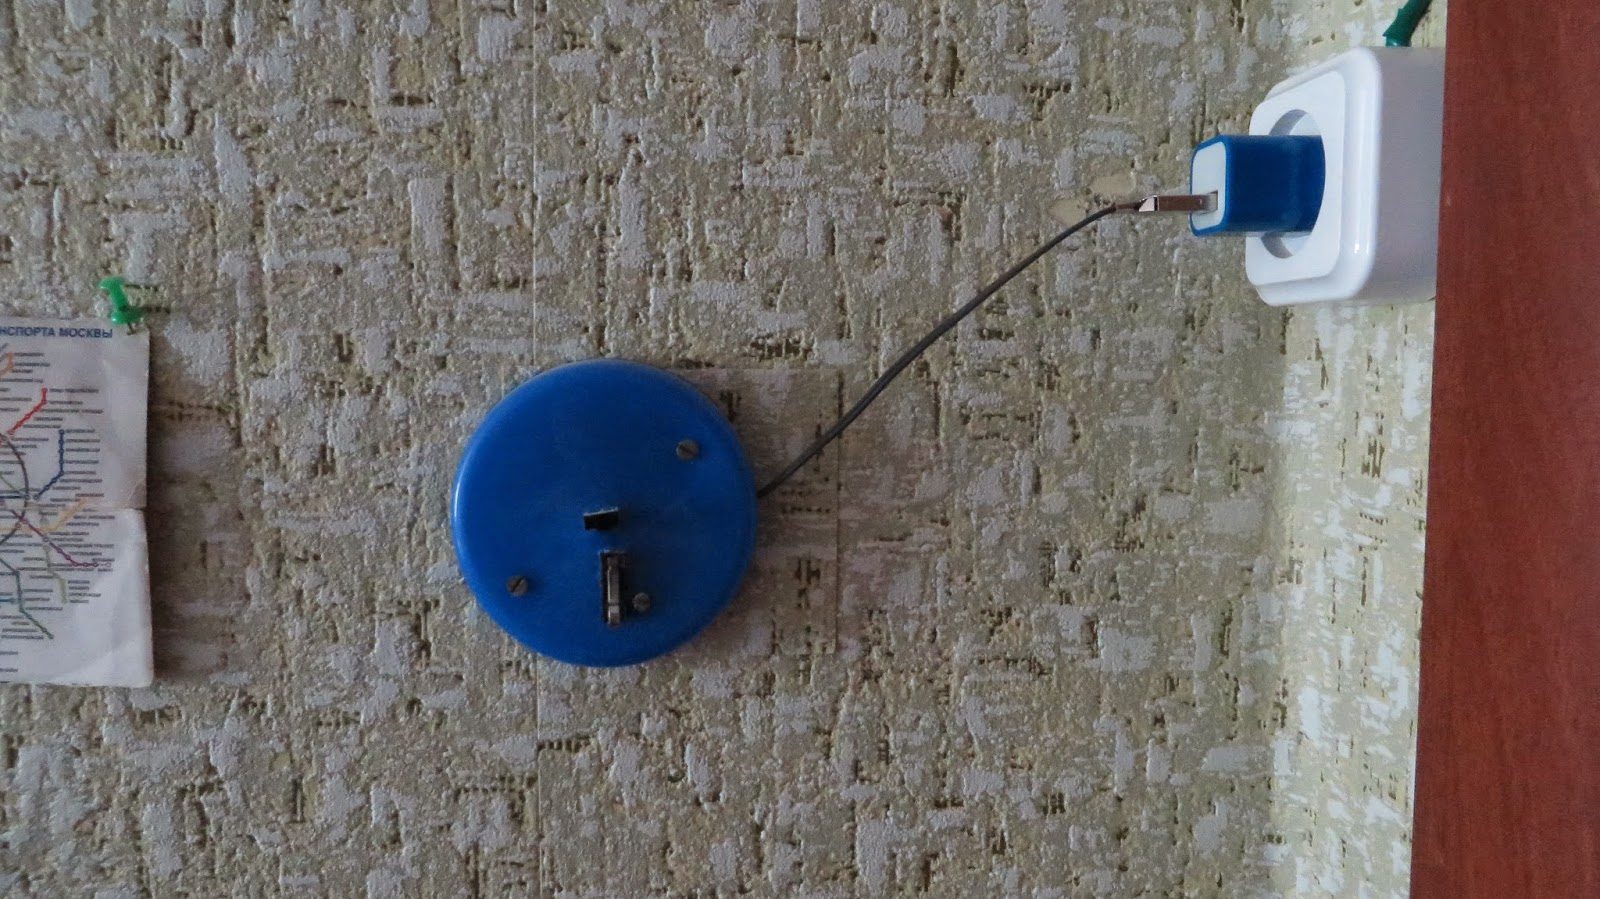 Infrared remote controlled light switch with ATTiny2313